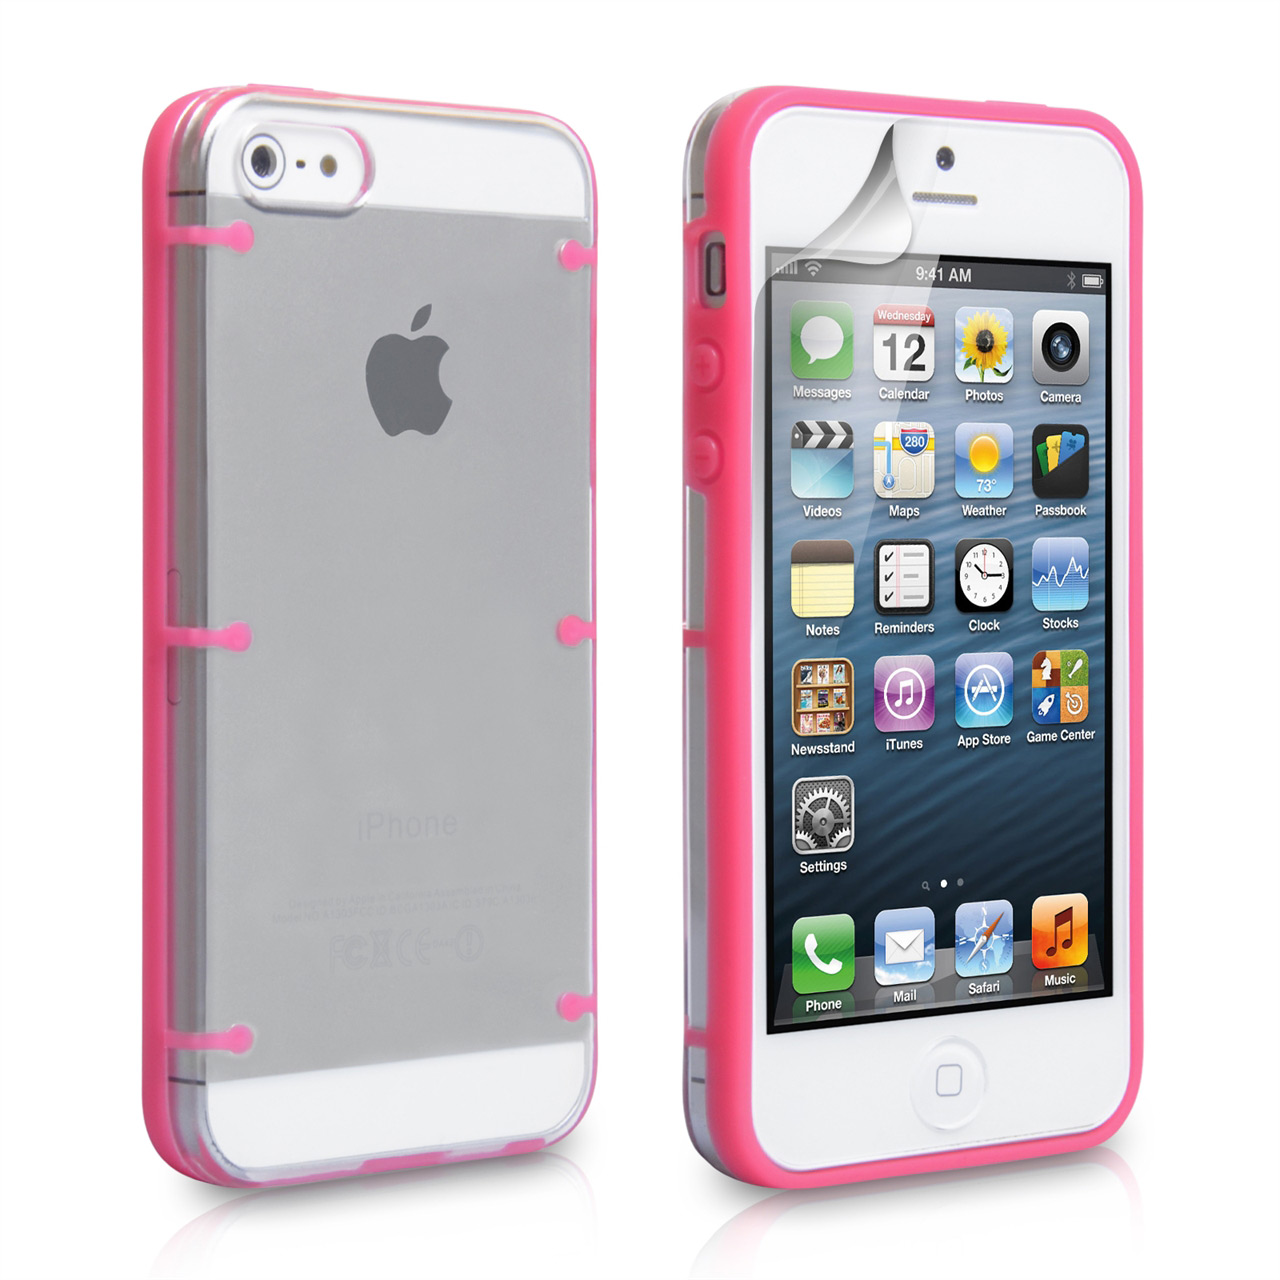 YouSave Accessories iPhone 5 / 5S Hard Hybrid Case - Pink-Clear